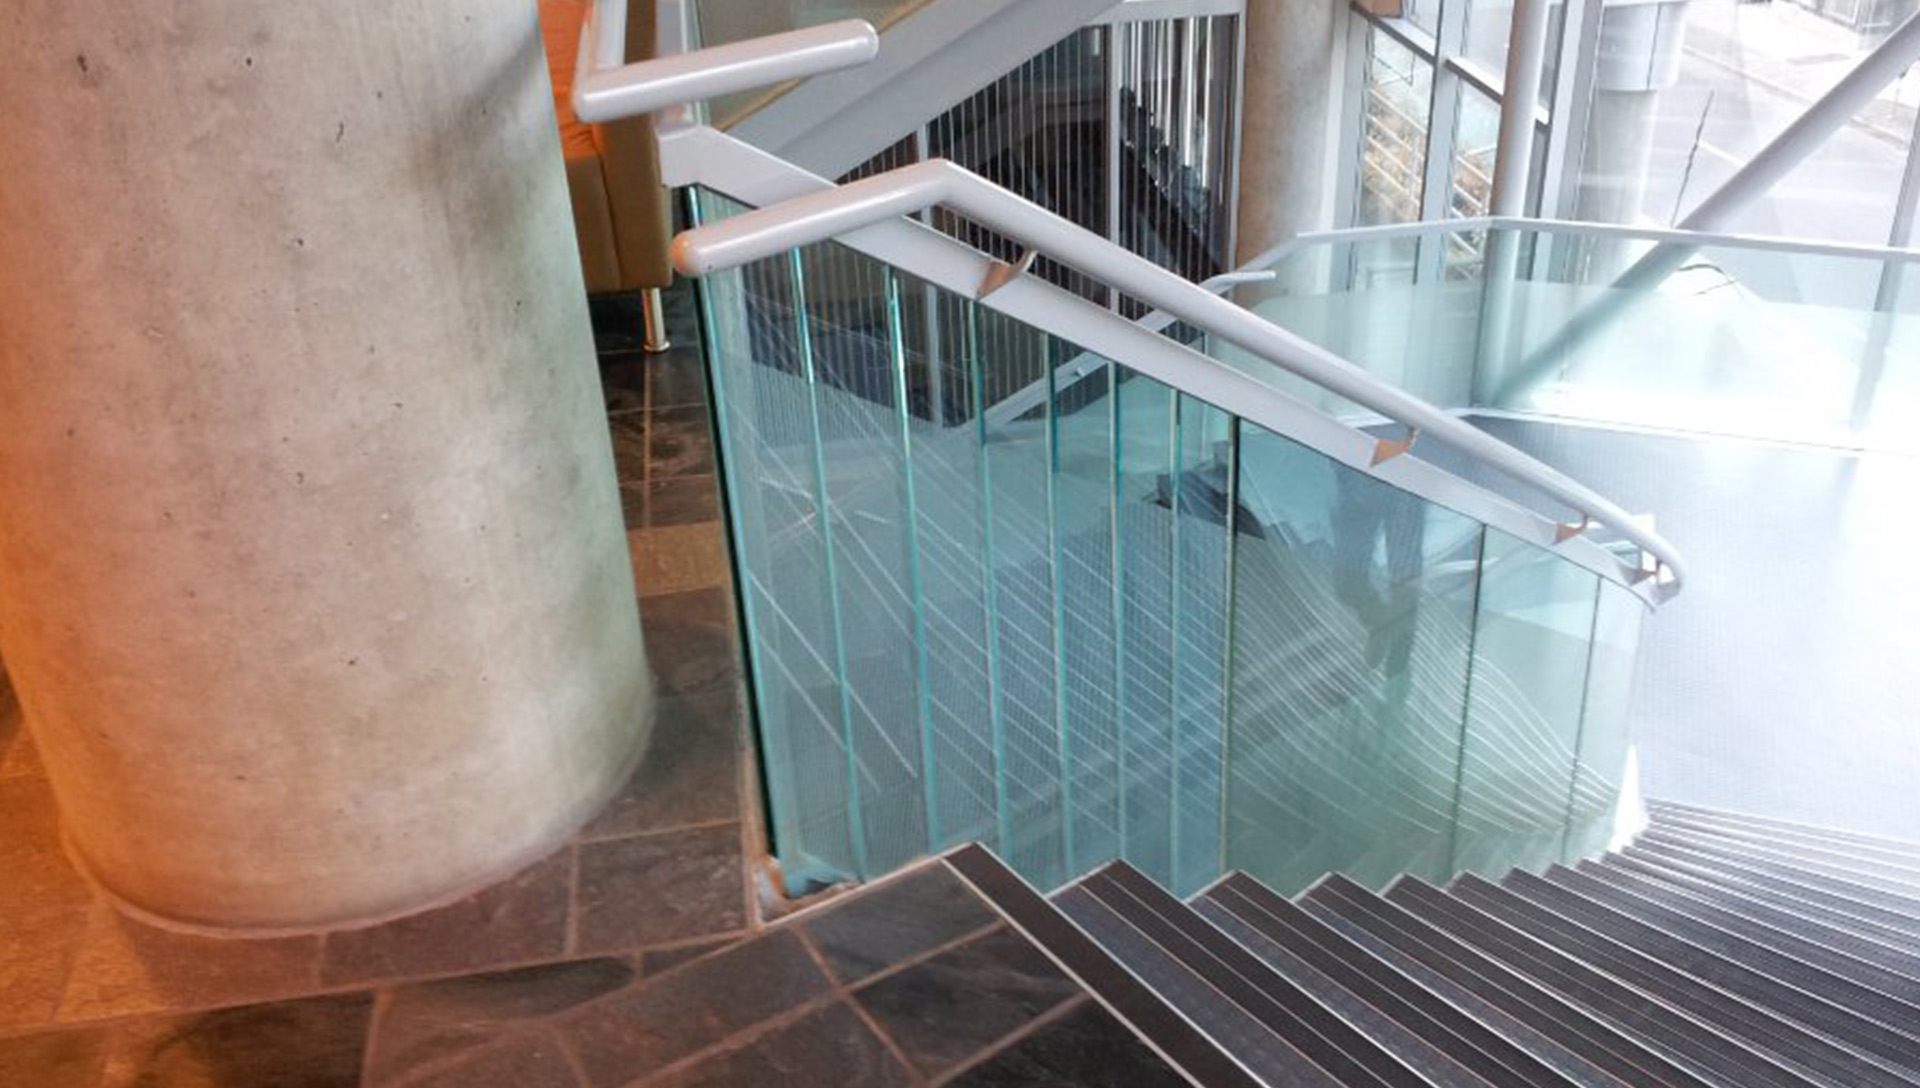 A Common Curved Glass Mistake Builders Make